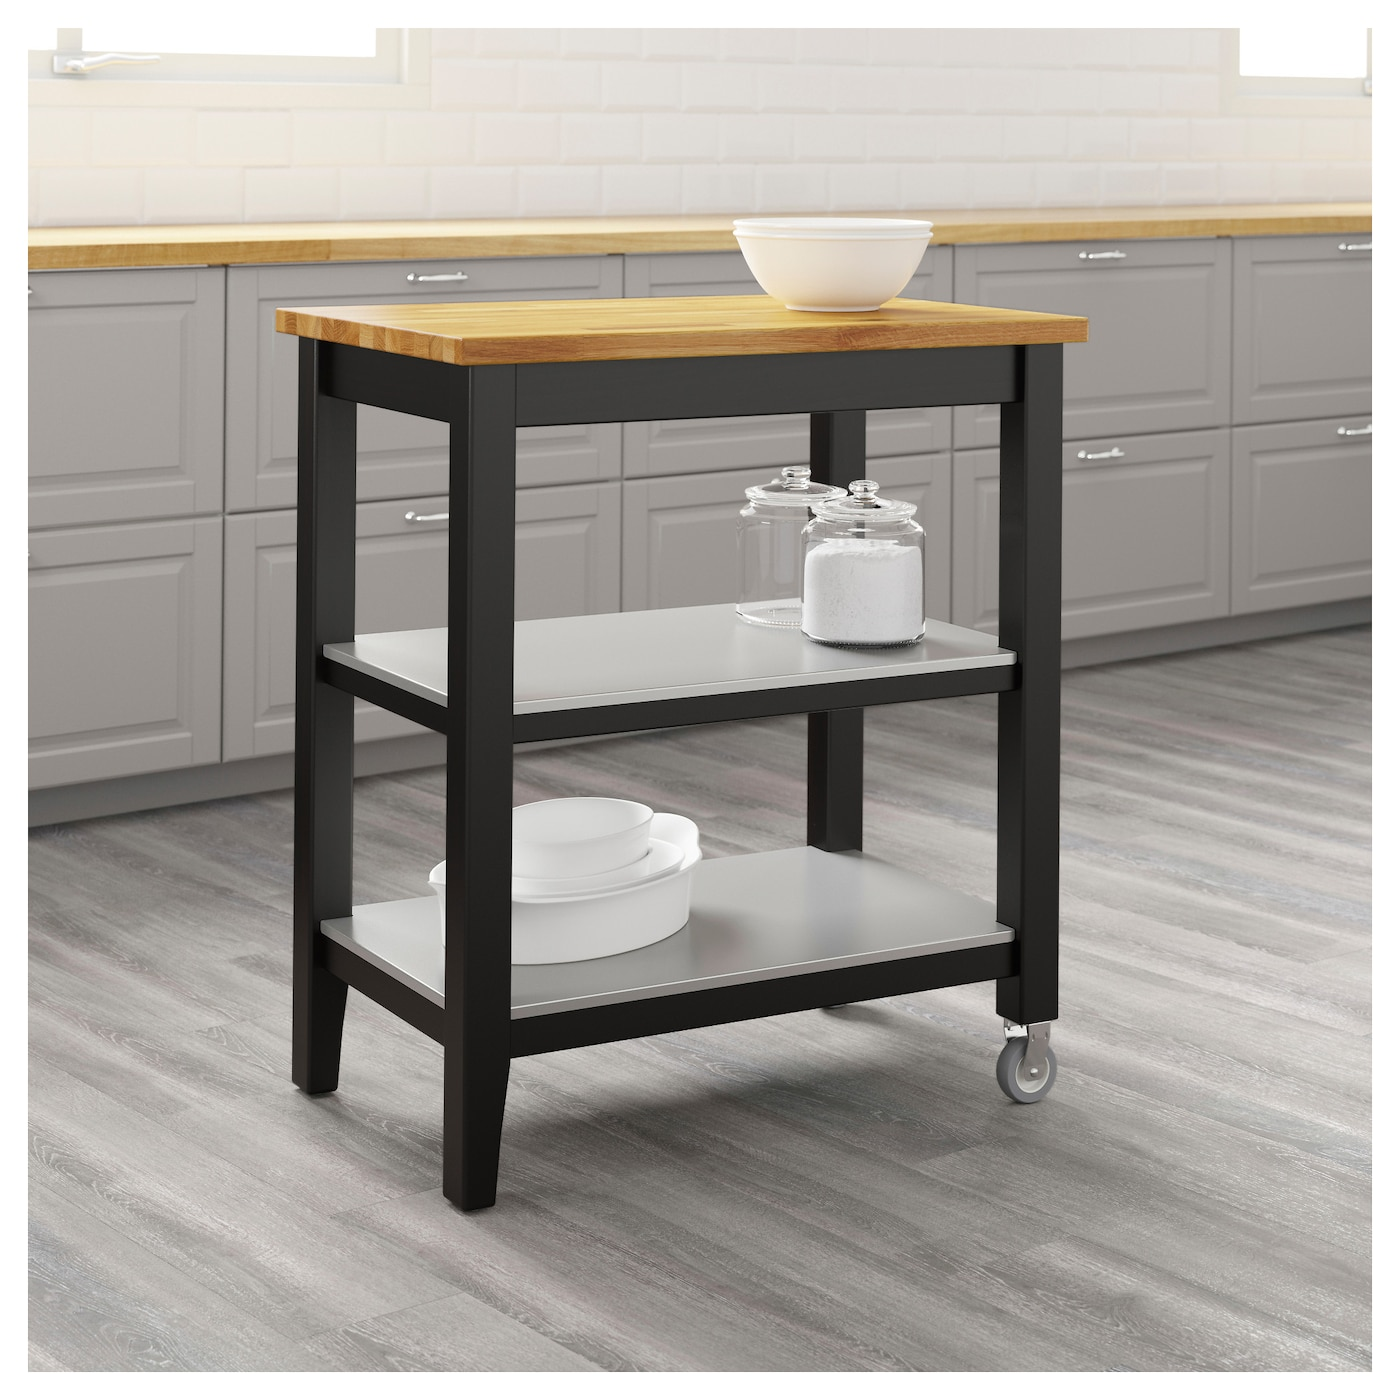 Ikea Patrull Drawer Cabinet Catch ~ IKEA STENSTORP kitchen trolley Gives you extra storage in your kitchen